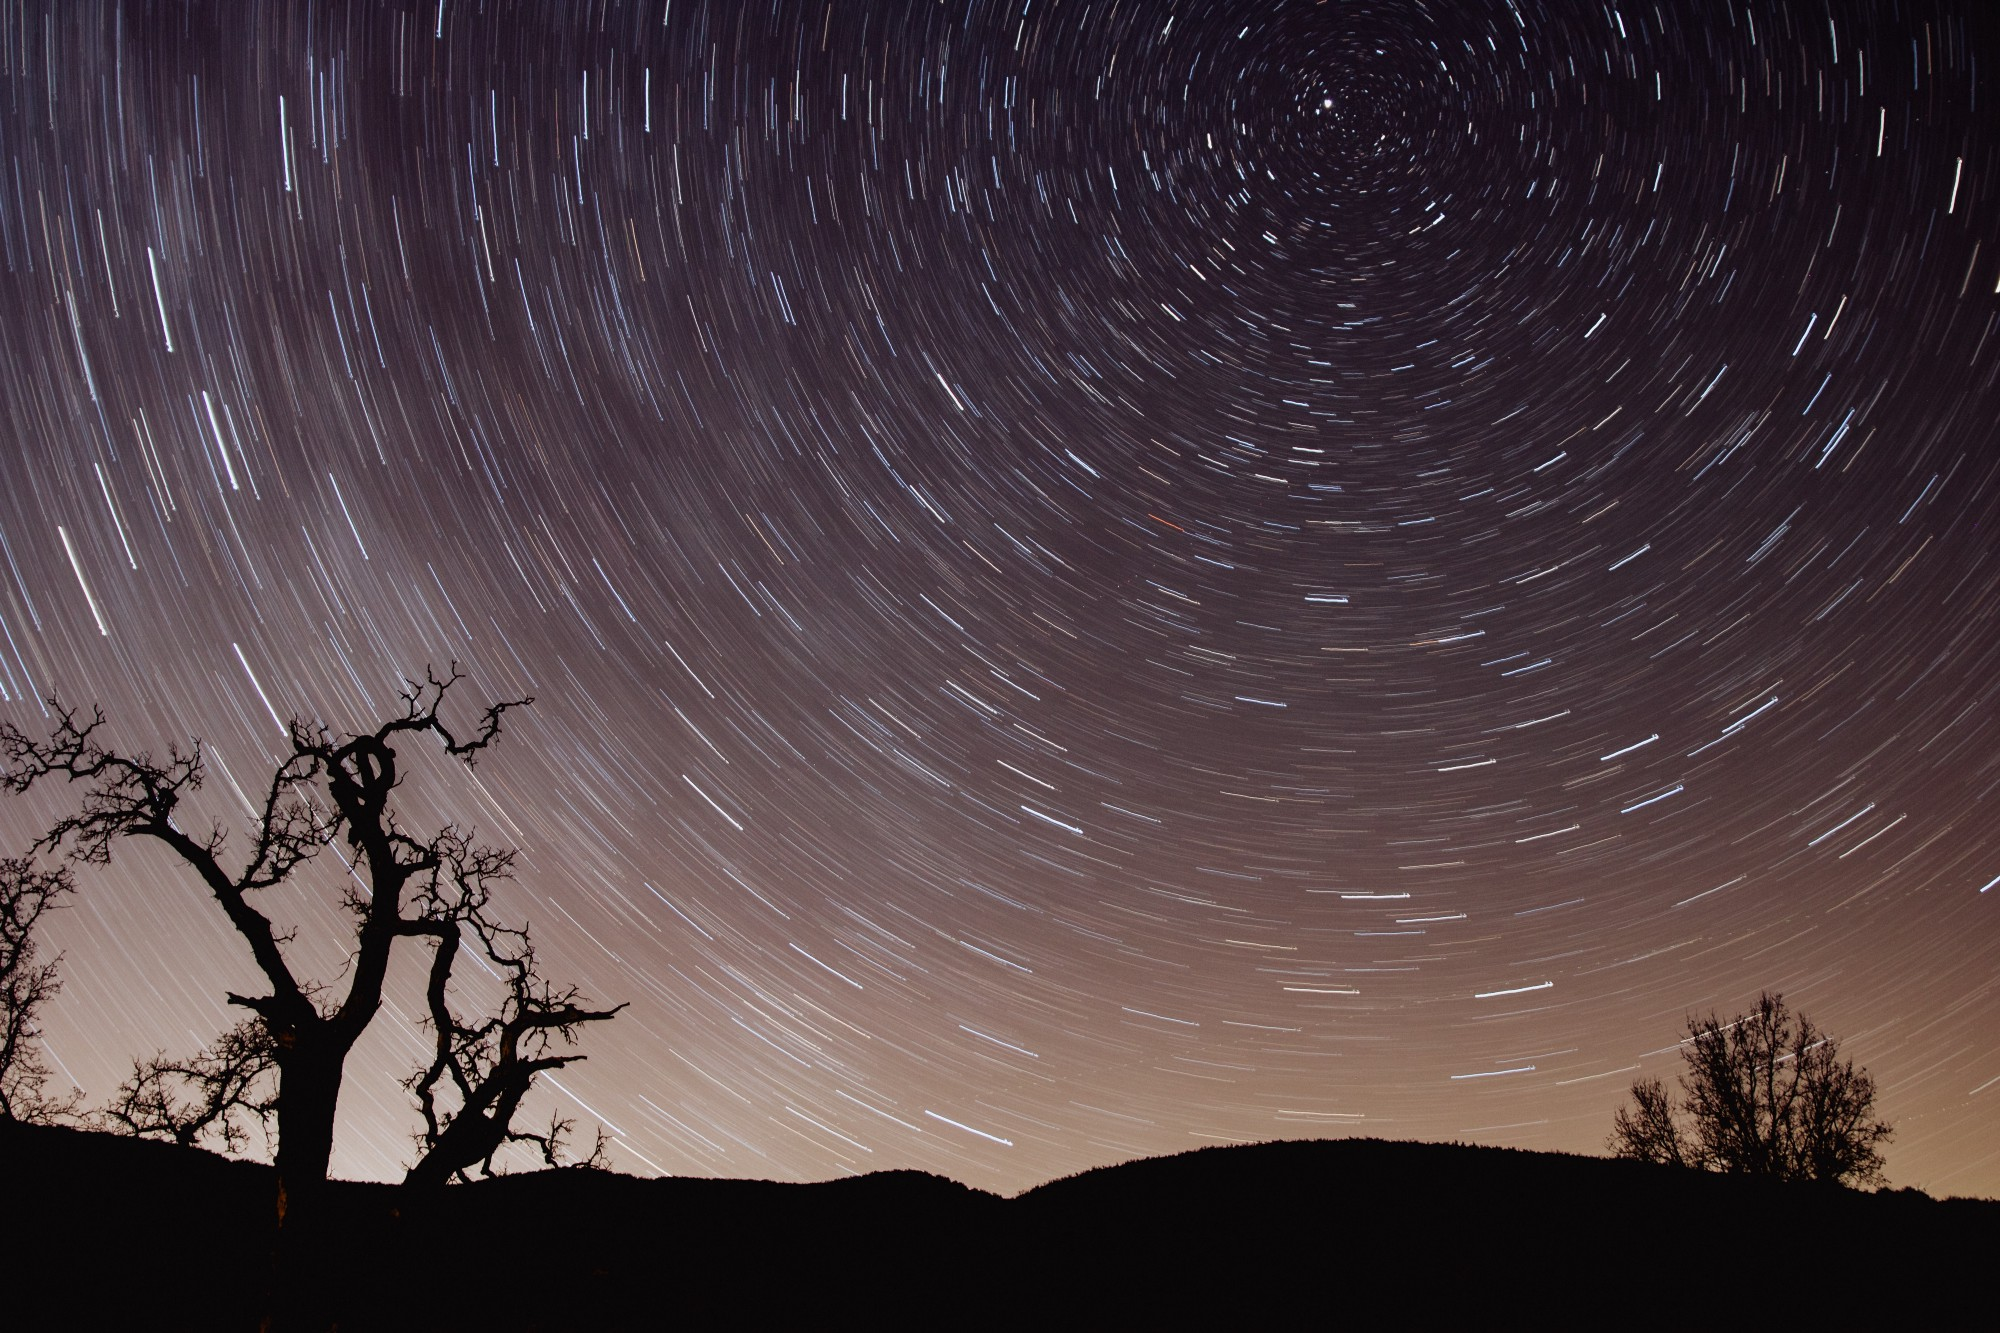 spinning rings of stars in a night sky, dark trees in the foreground